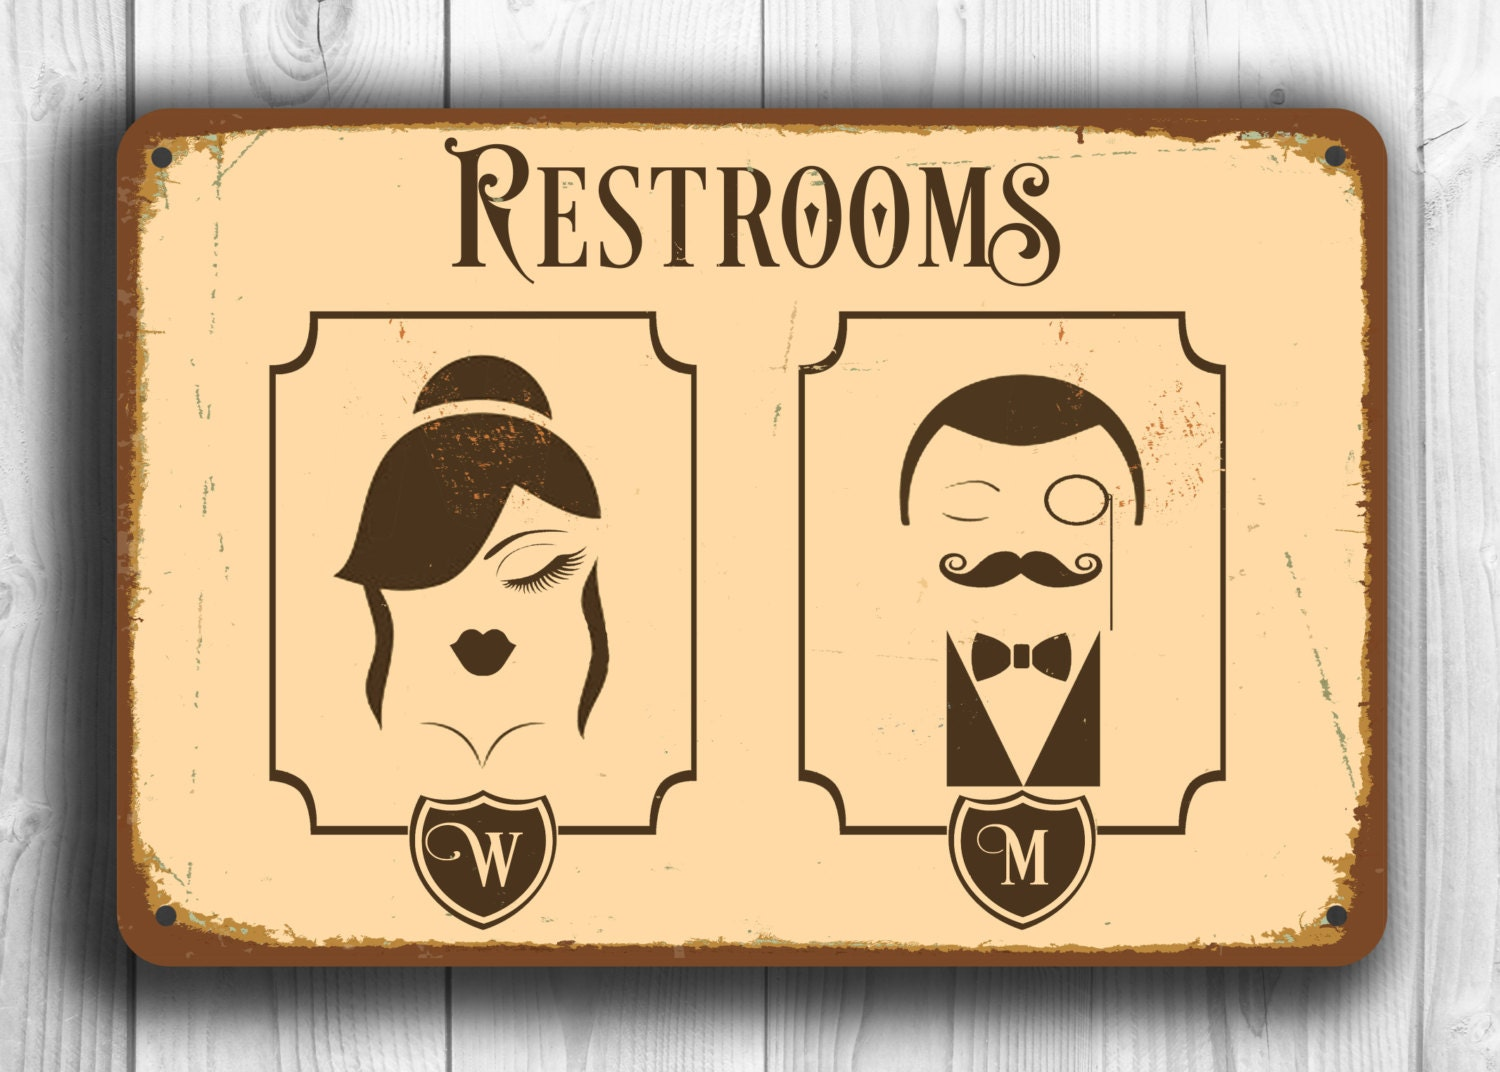 Bathroom Signs South Africa restroom sign restroom signs toilet sign male female